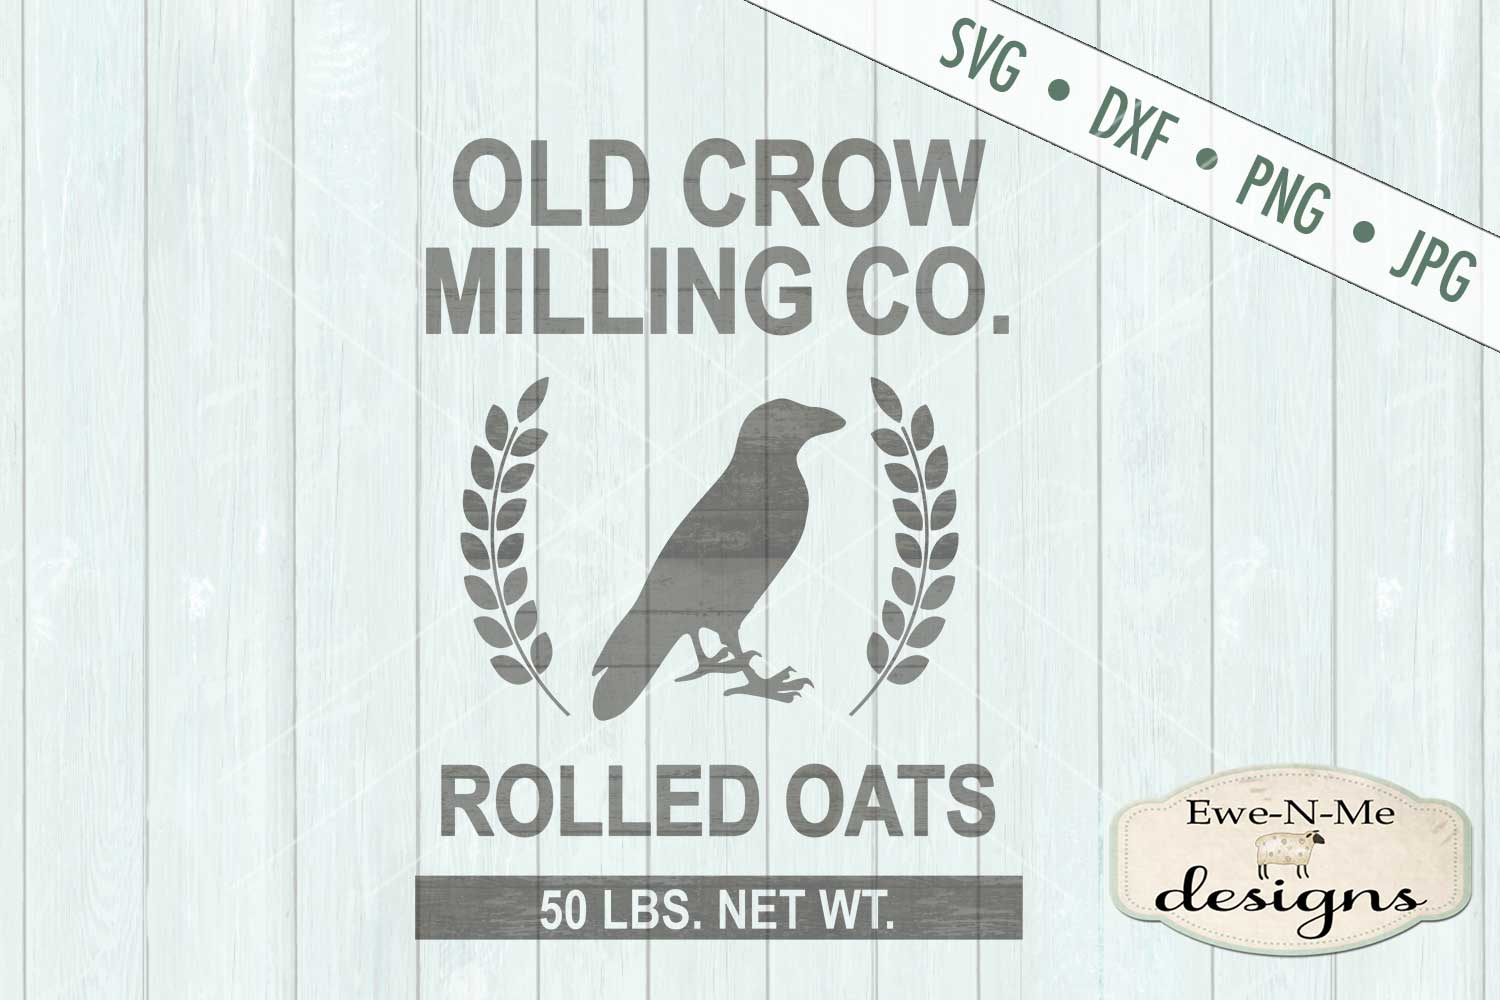 Old Crow Milling Co Rolled Oats SVG DXF Files example image 2